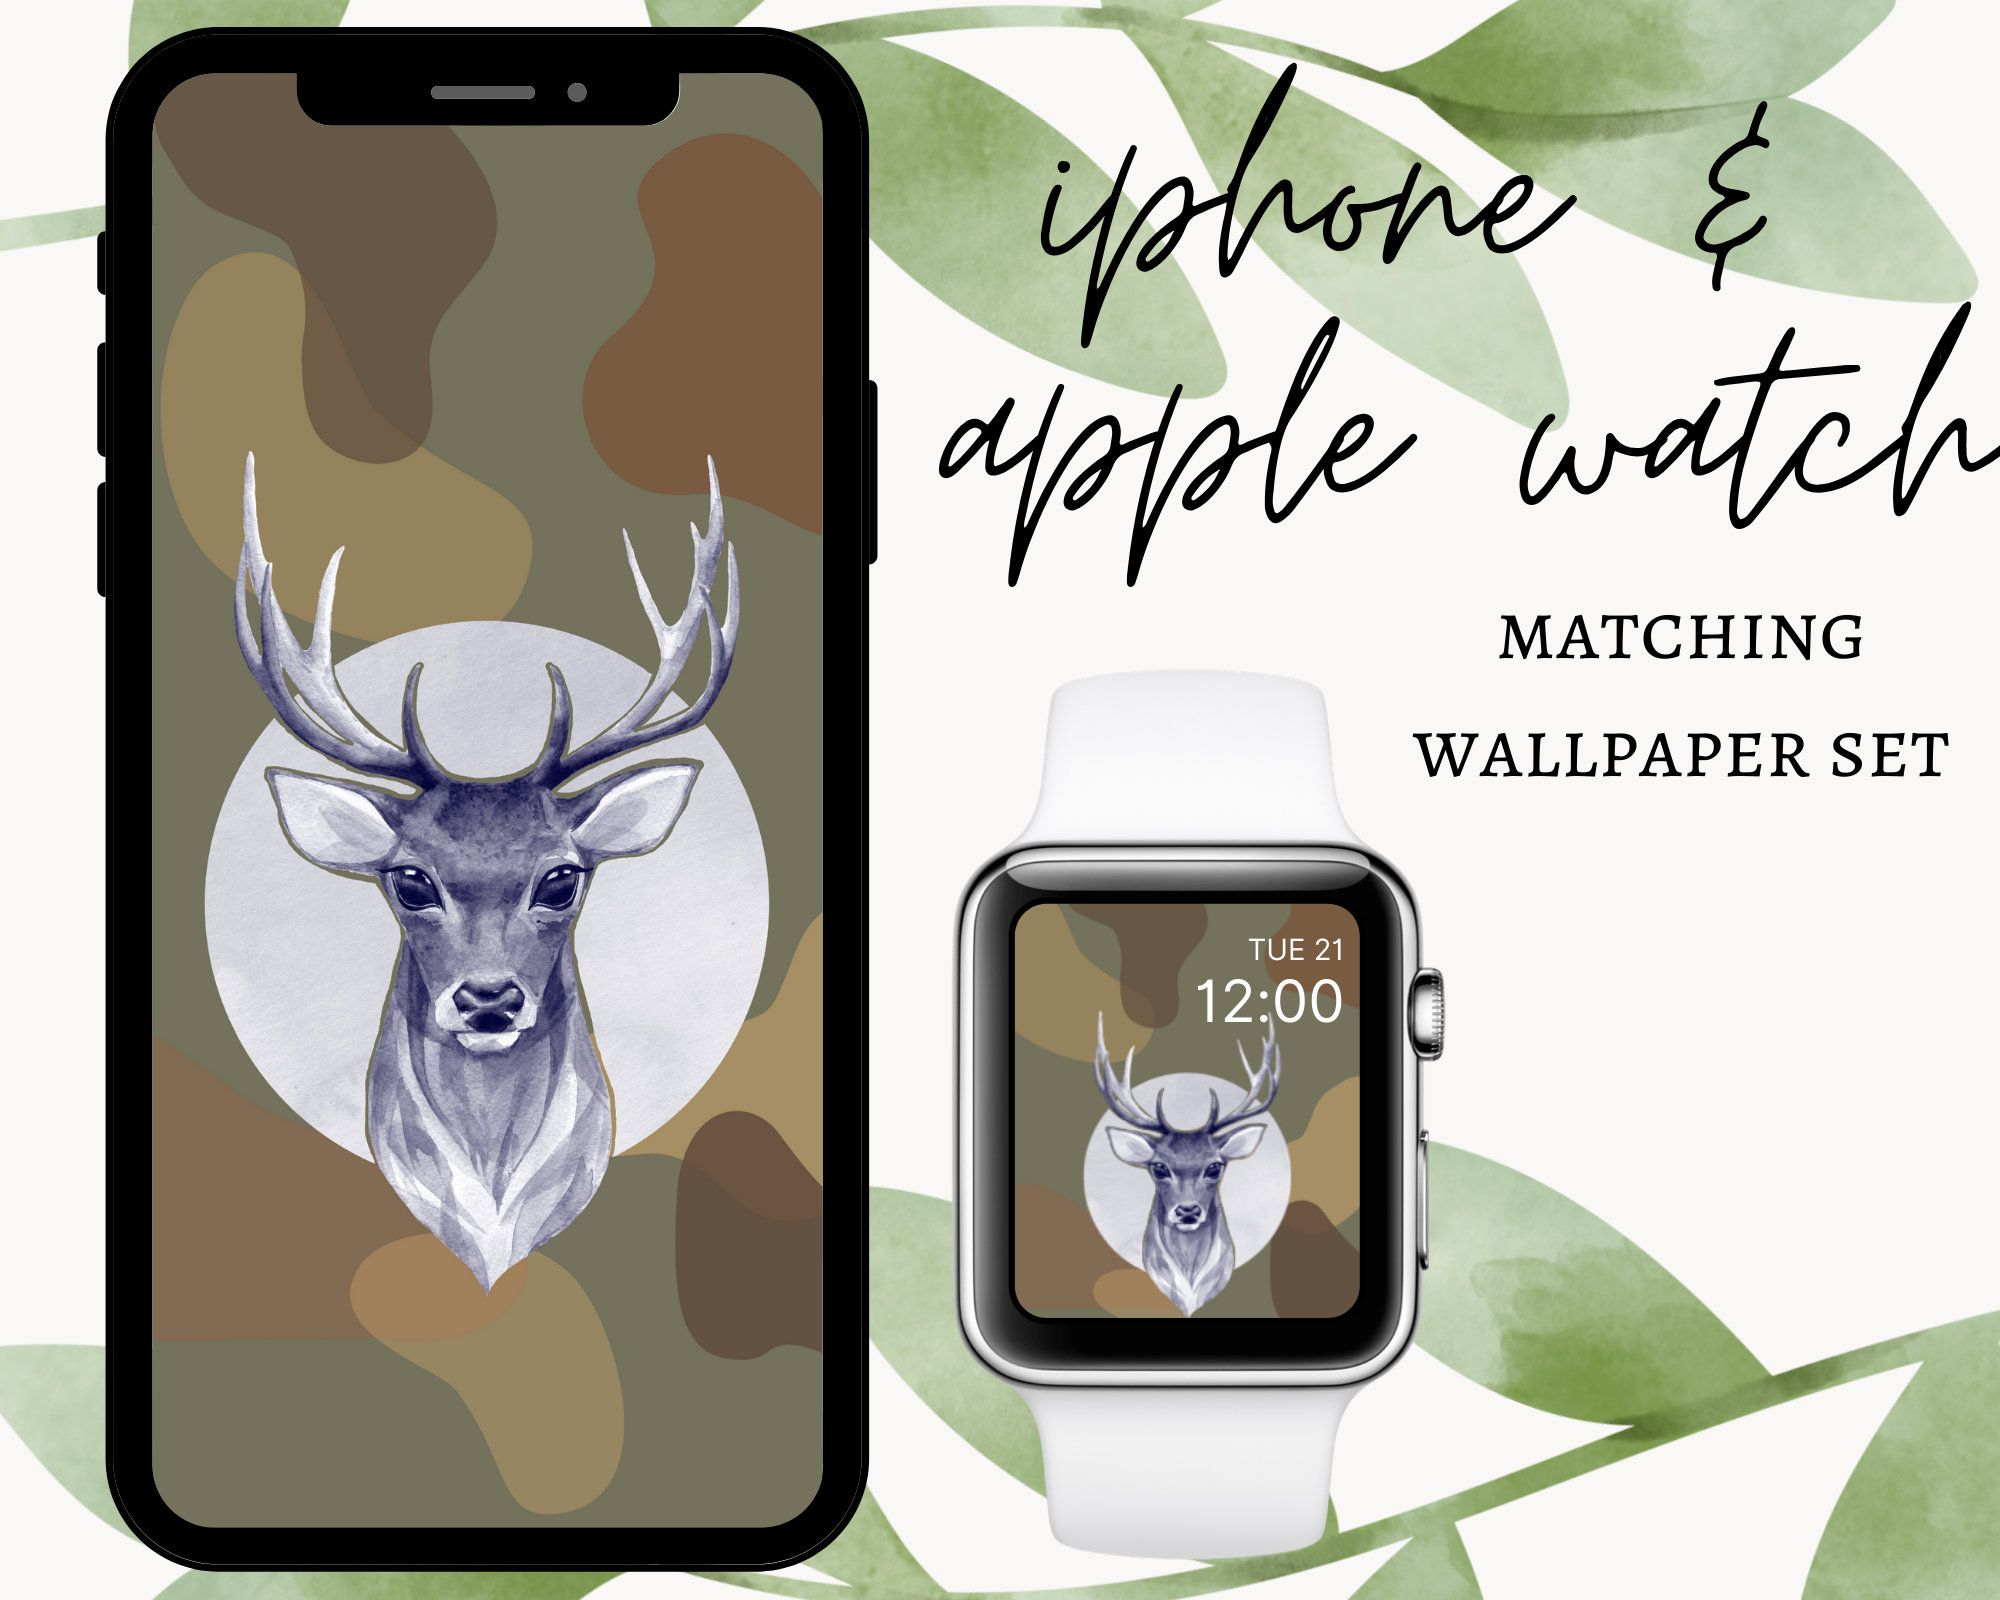 Iphone wallpaper and Apple Watch matching set | Etsy